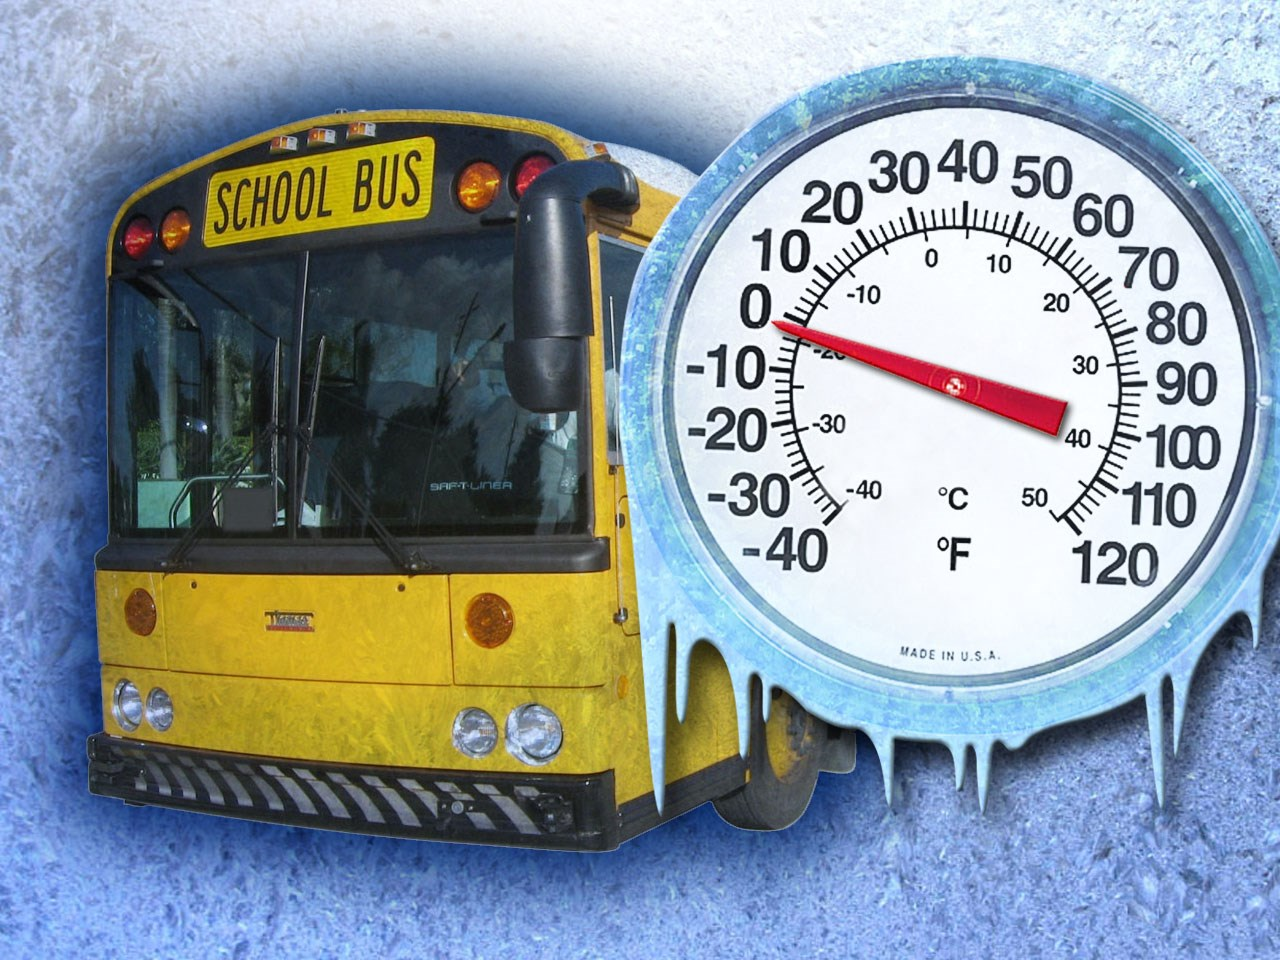 SCHOOL DELAY BUS WITH ICE_1550578237548.jpg.jpg